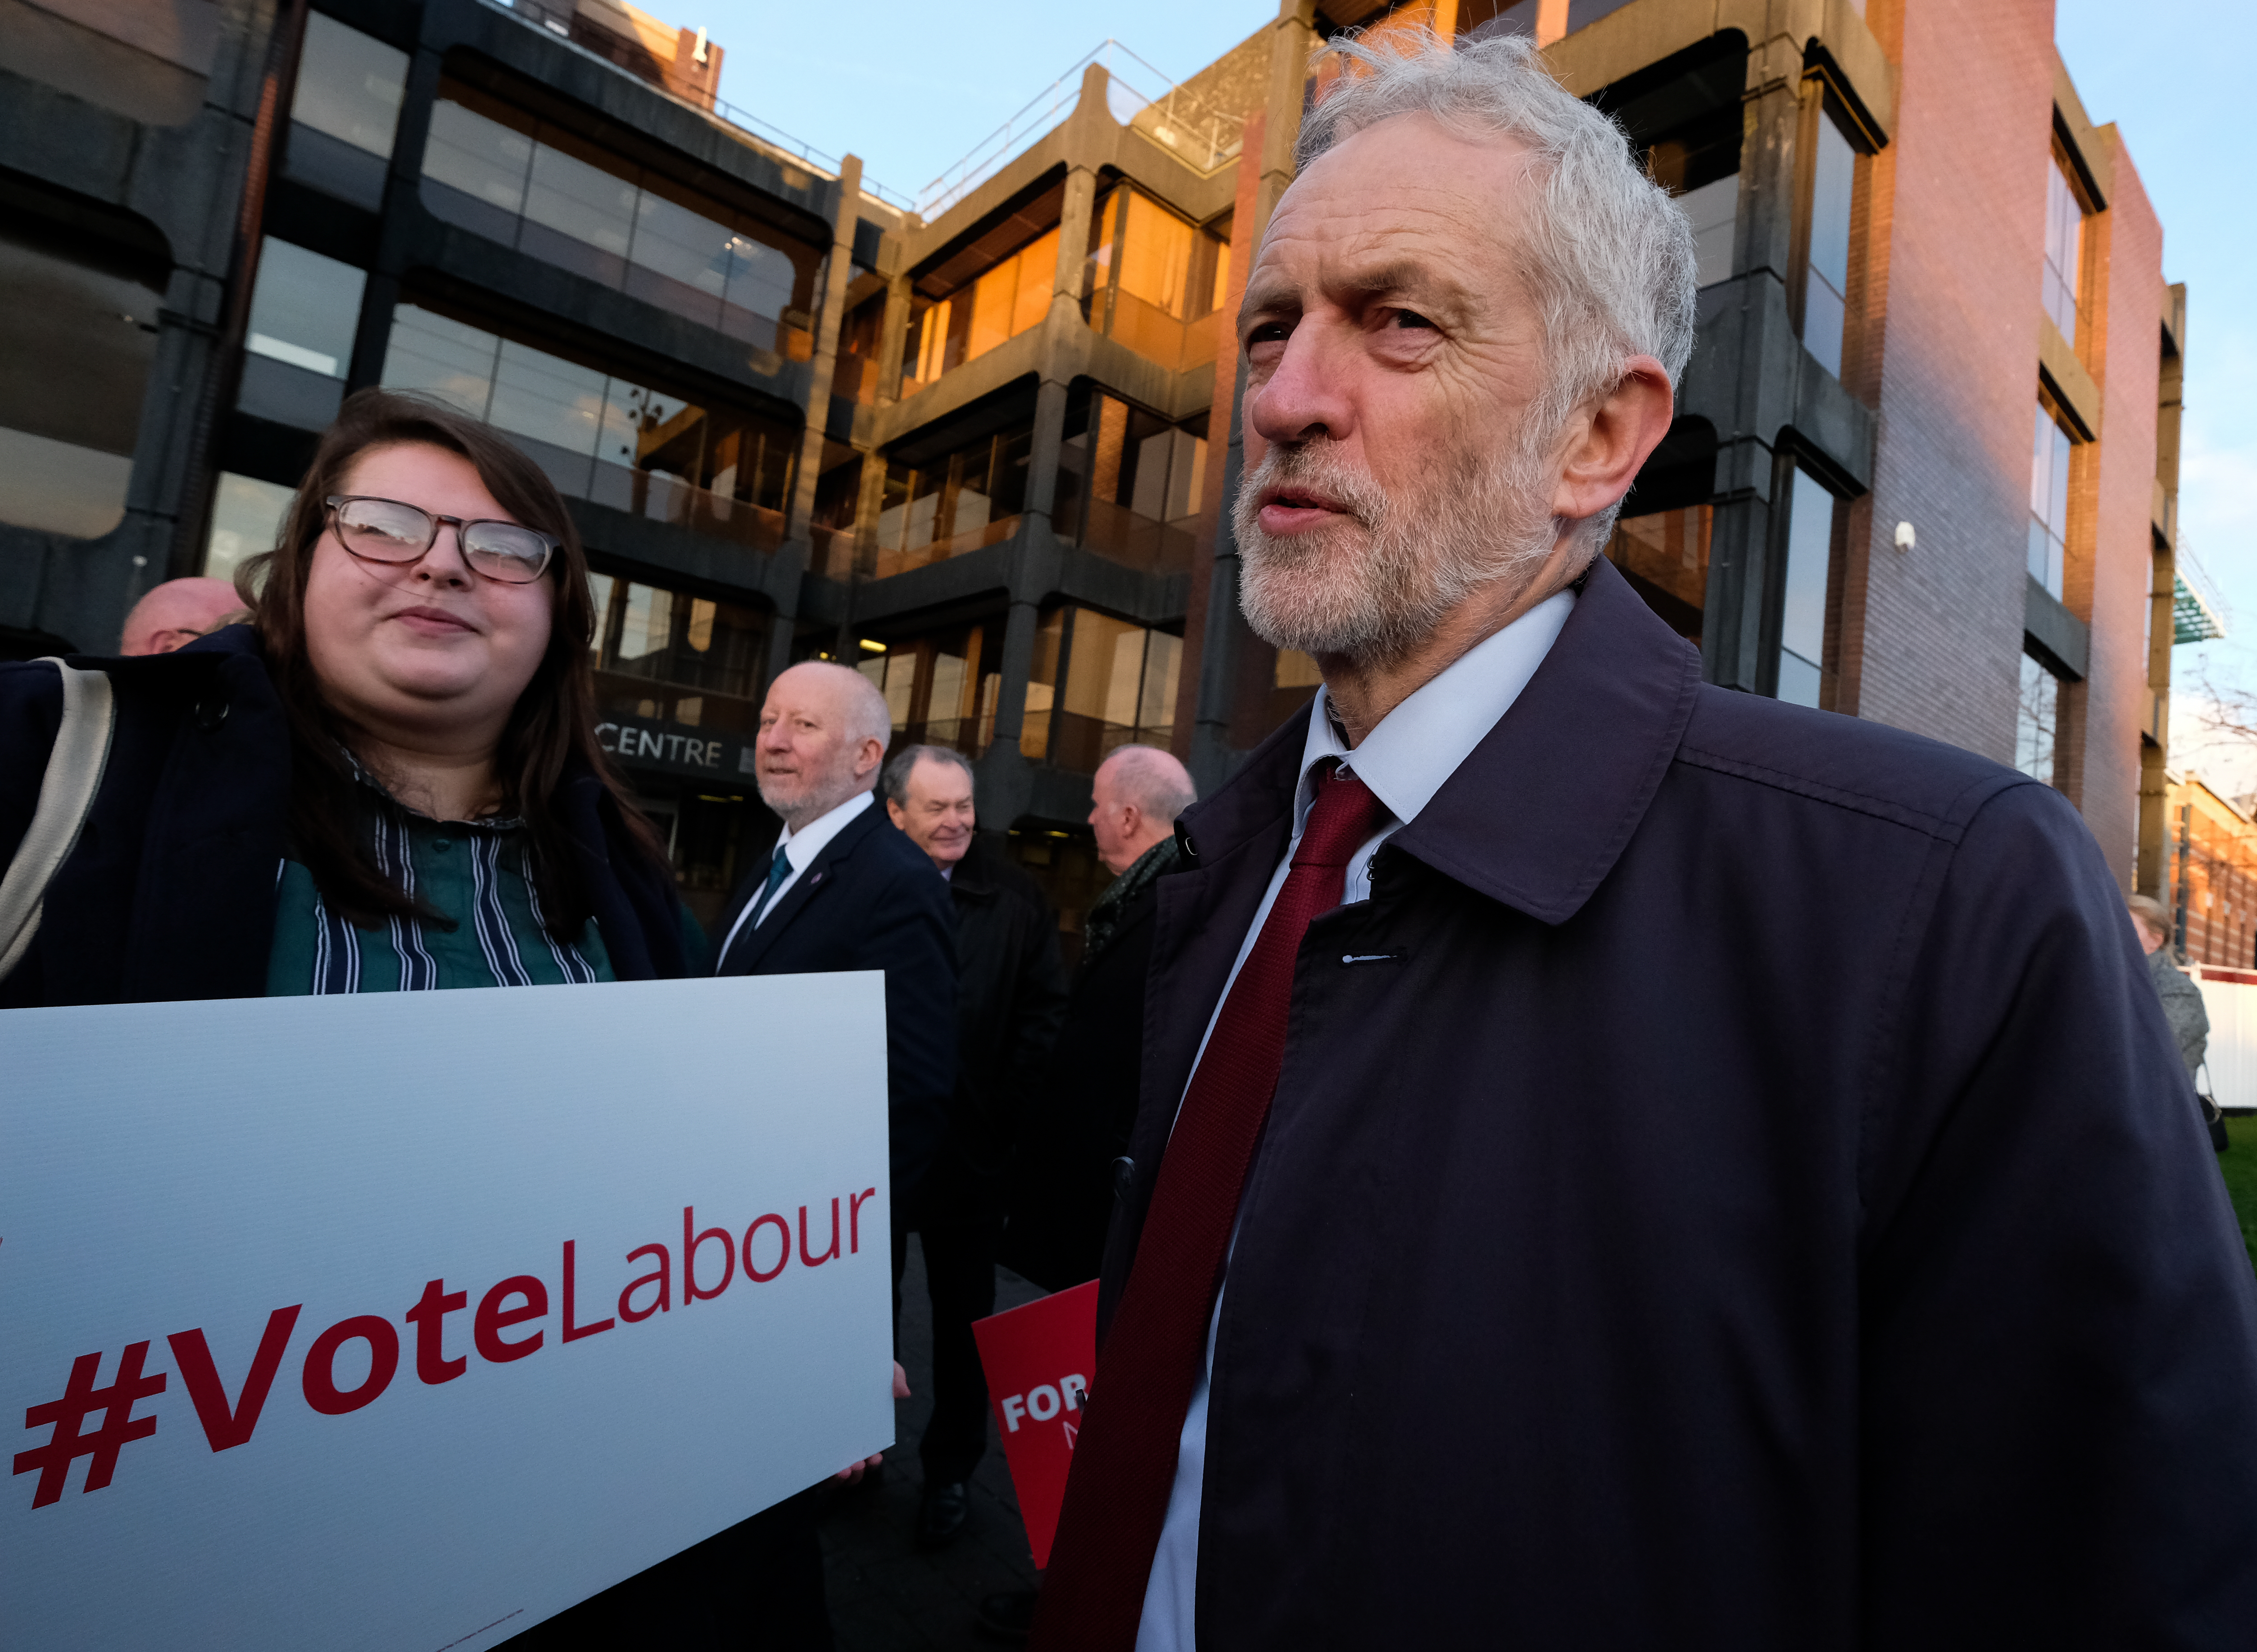 Labour leader Jeremy Corbyn meets party supporters during a visit to Middlesbrough on January 25.